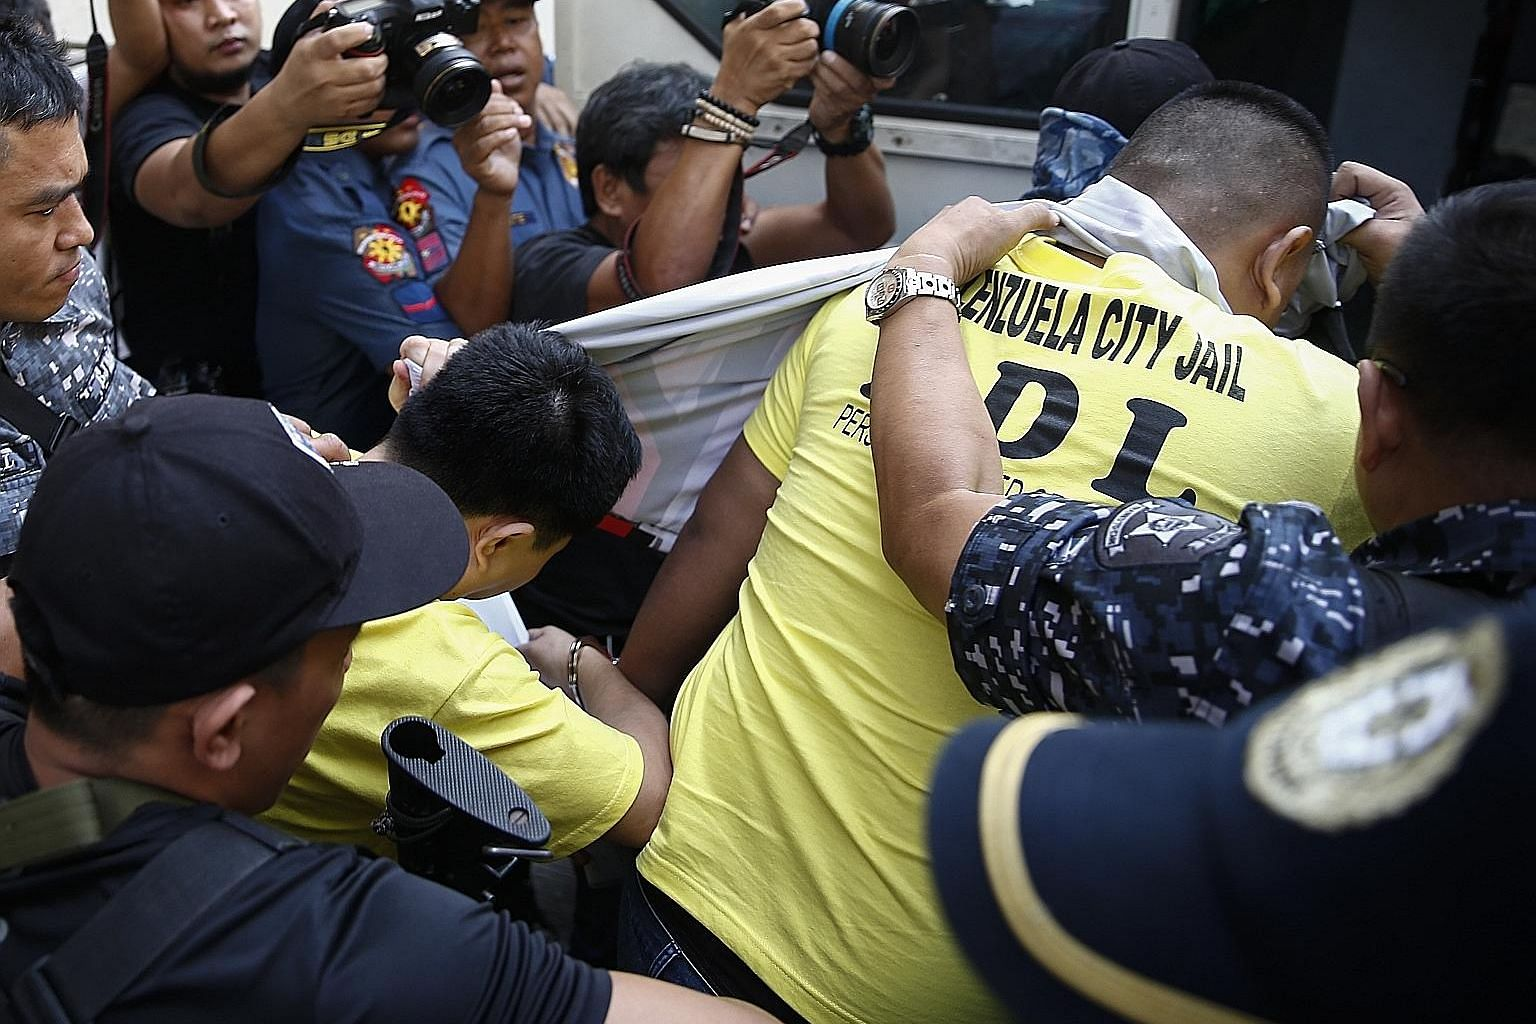 Two of the police officers (below, in yellow) convicted of the murder of teen Kian delos Santos (left) being taken out of a Caloocan city court building yesterday.